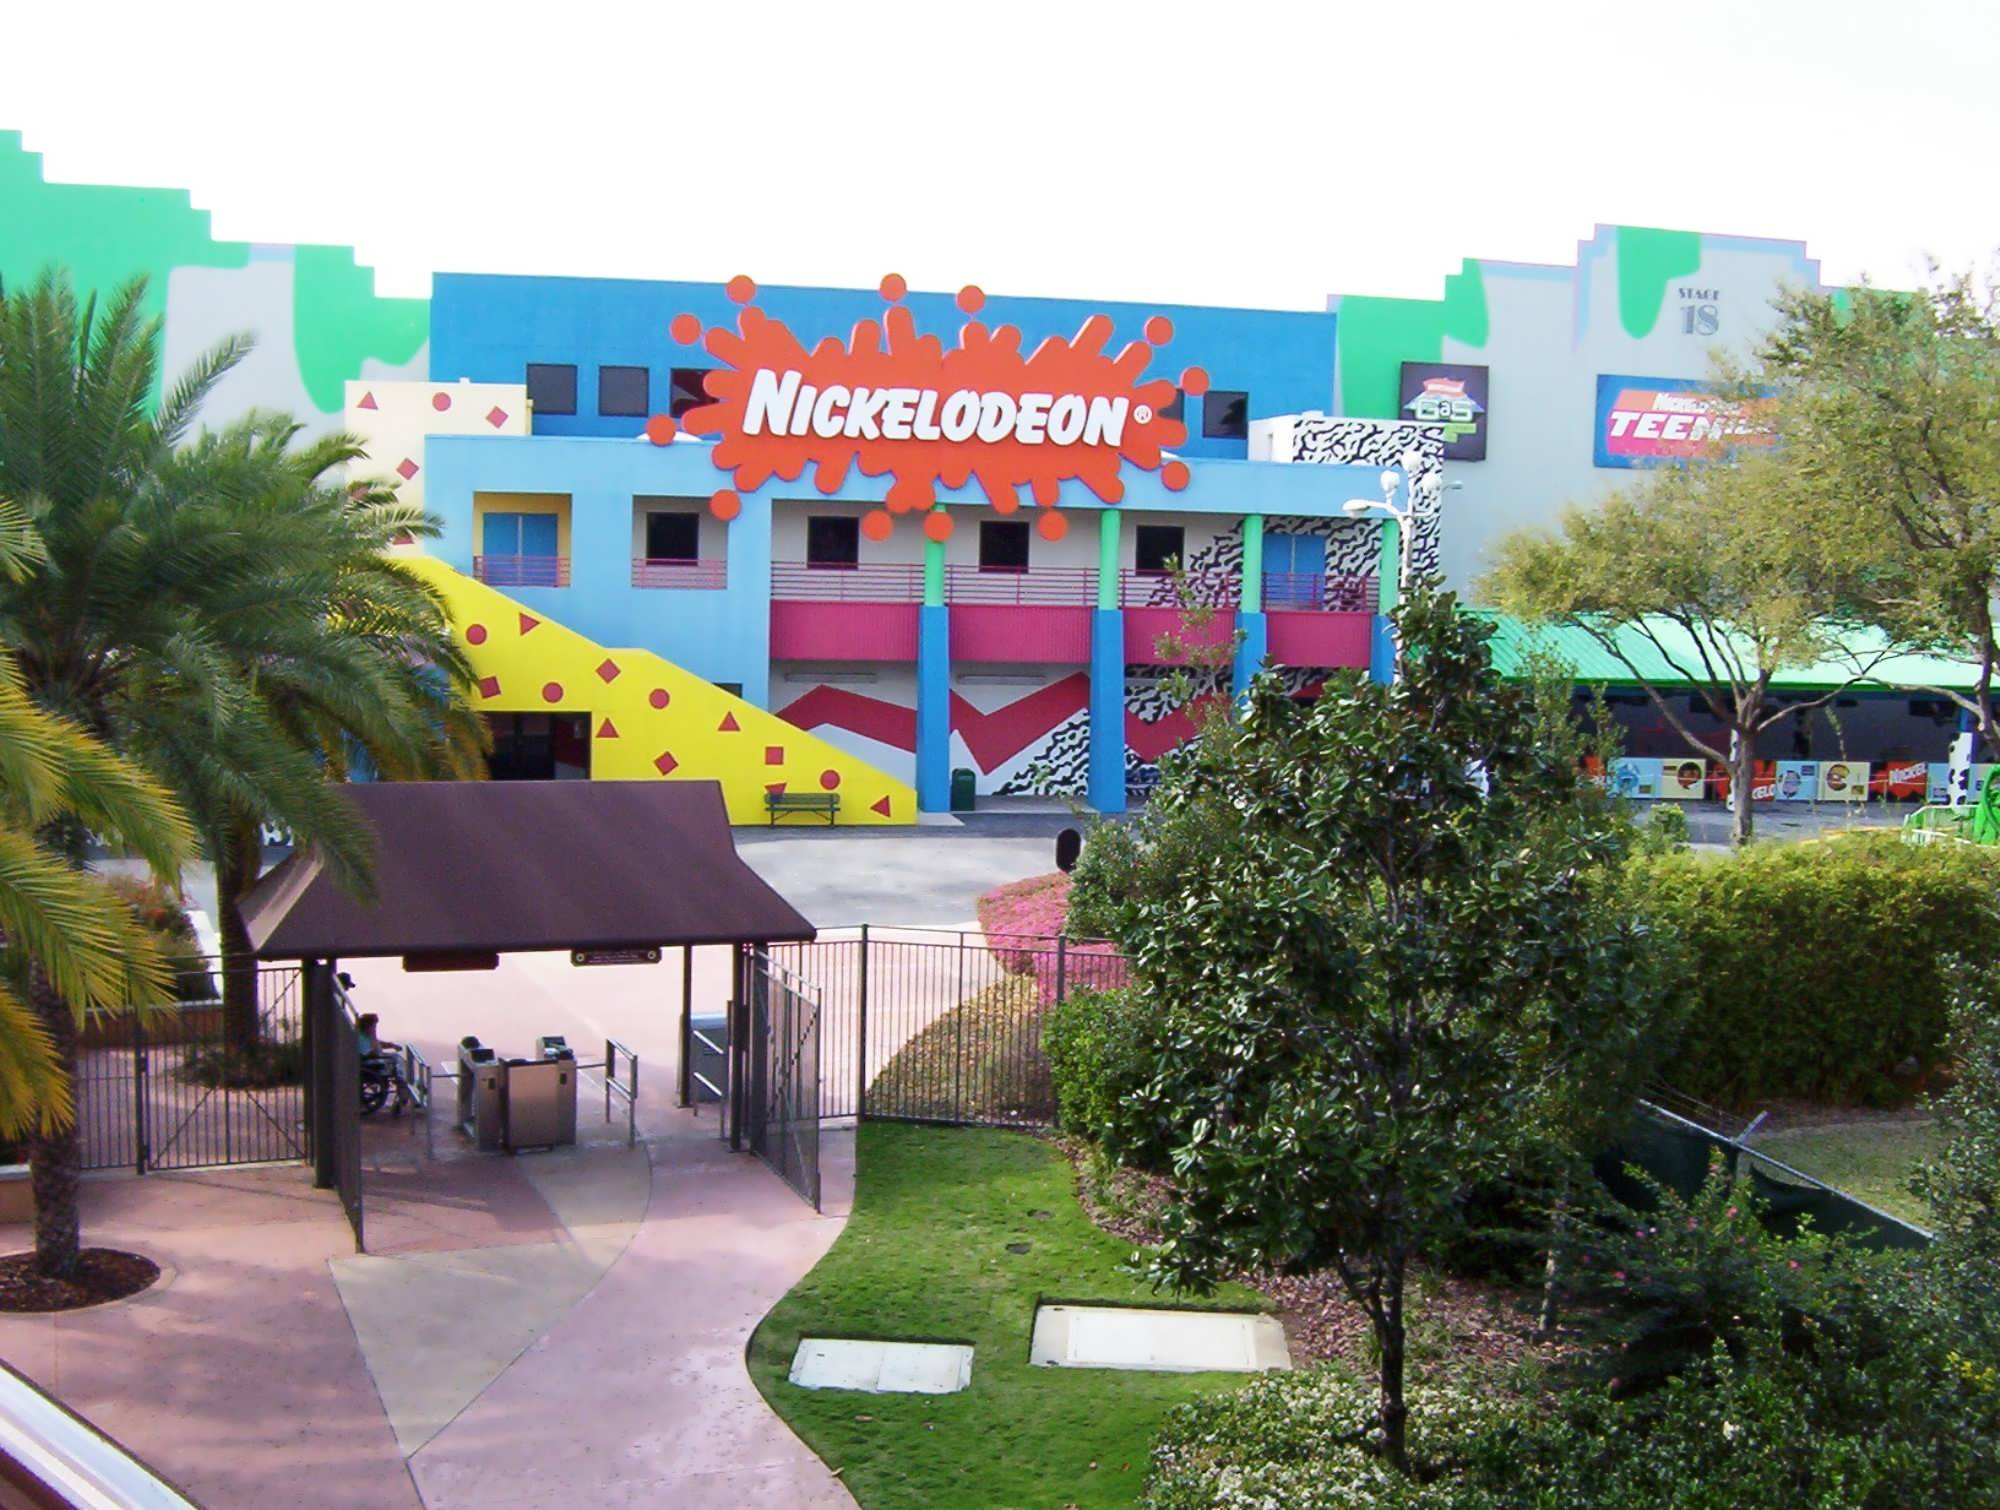 Nickelodeon Studios in Hard Rock Cafe